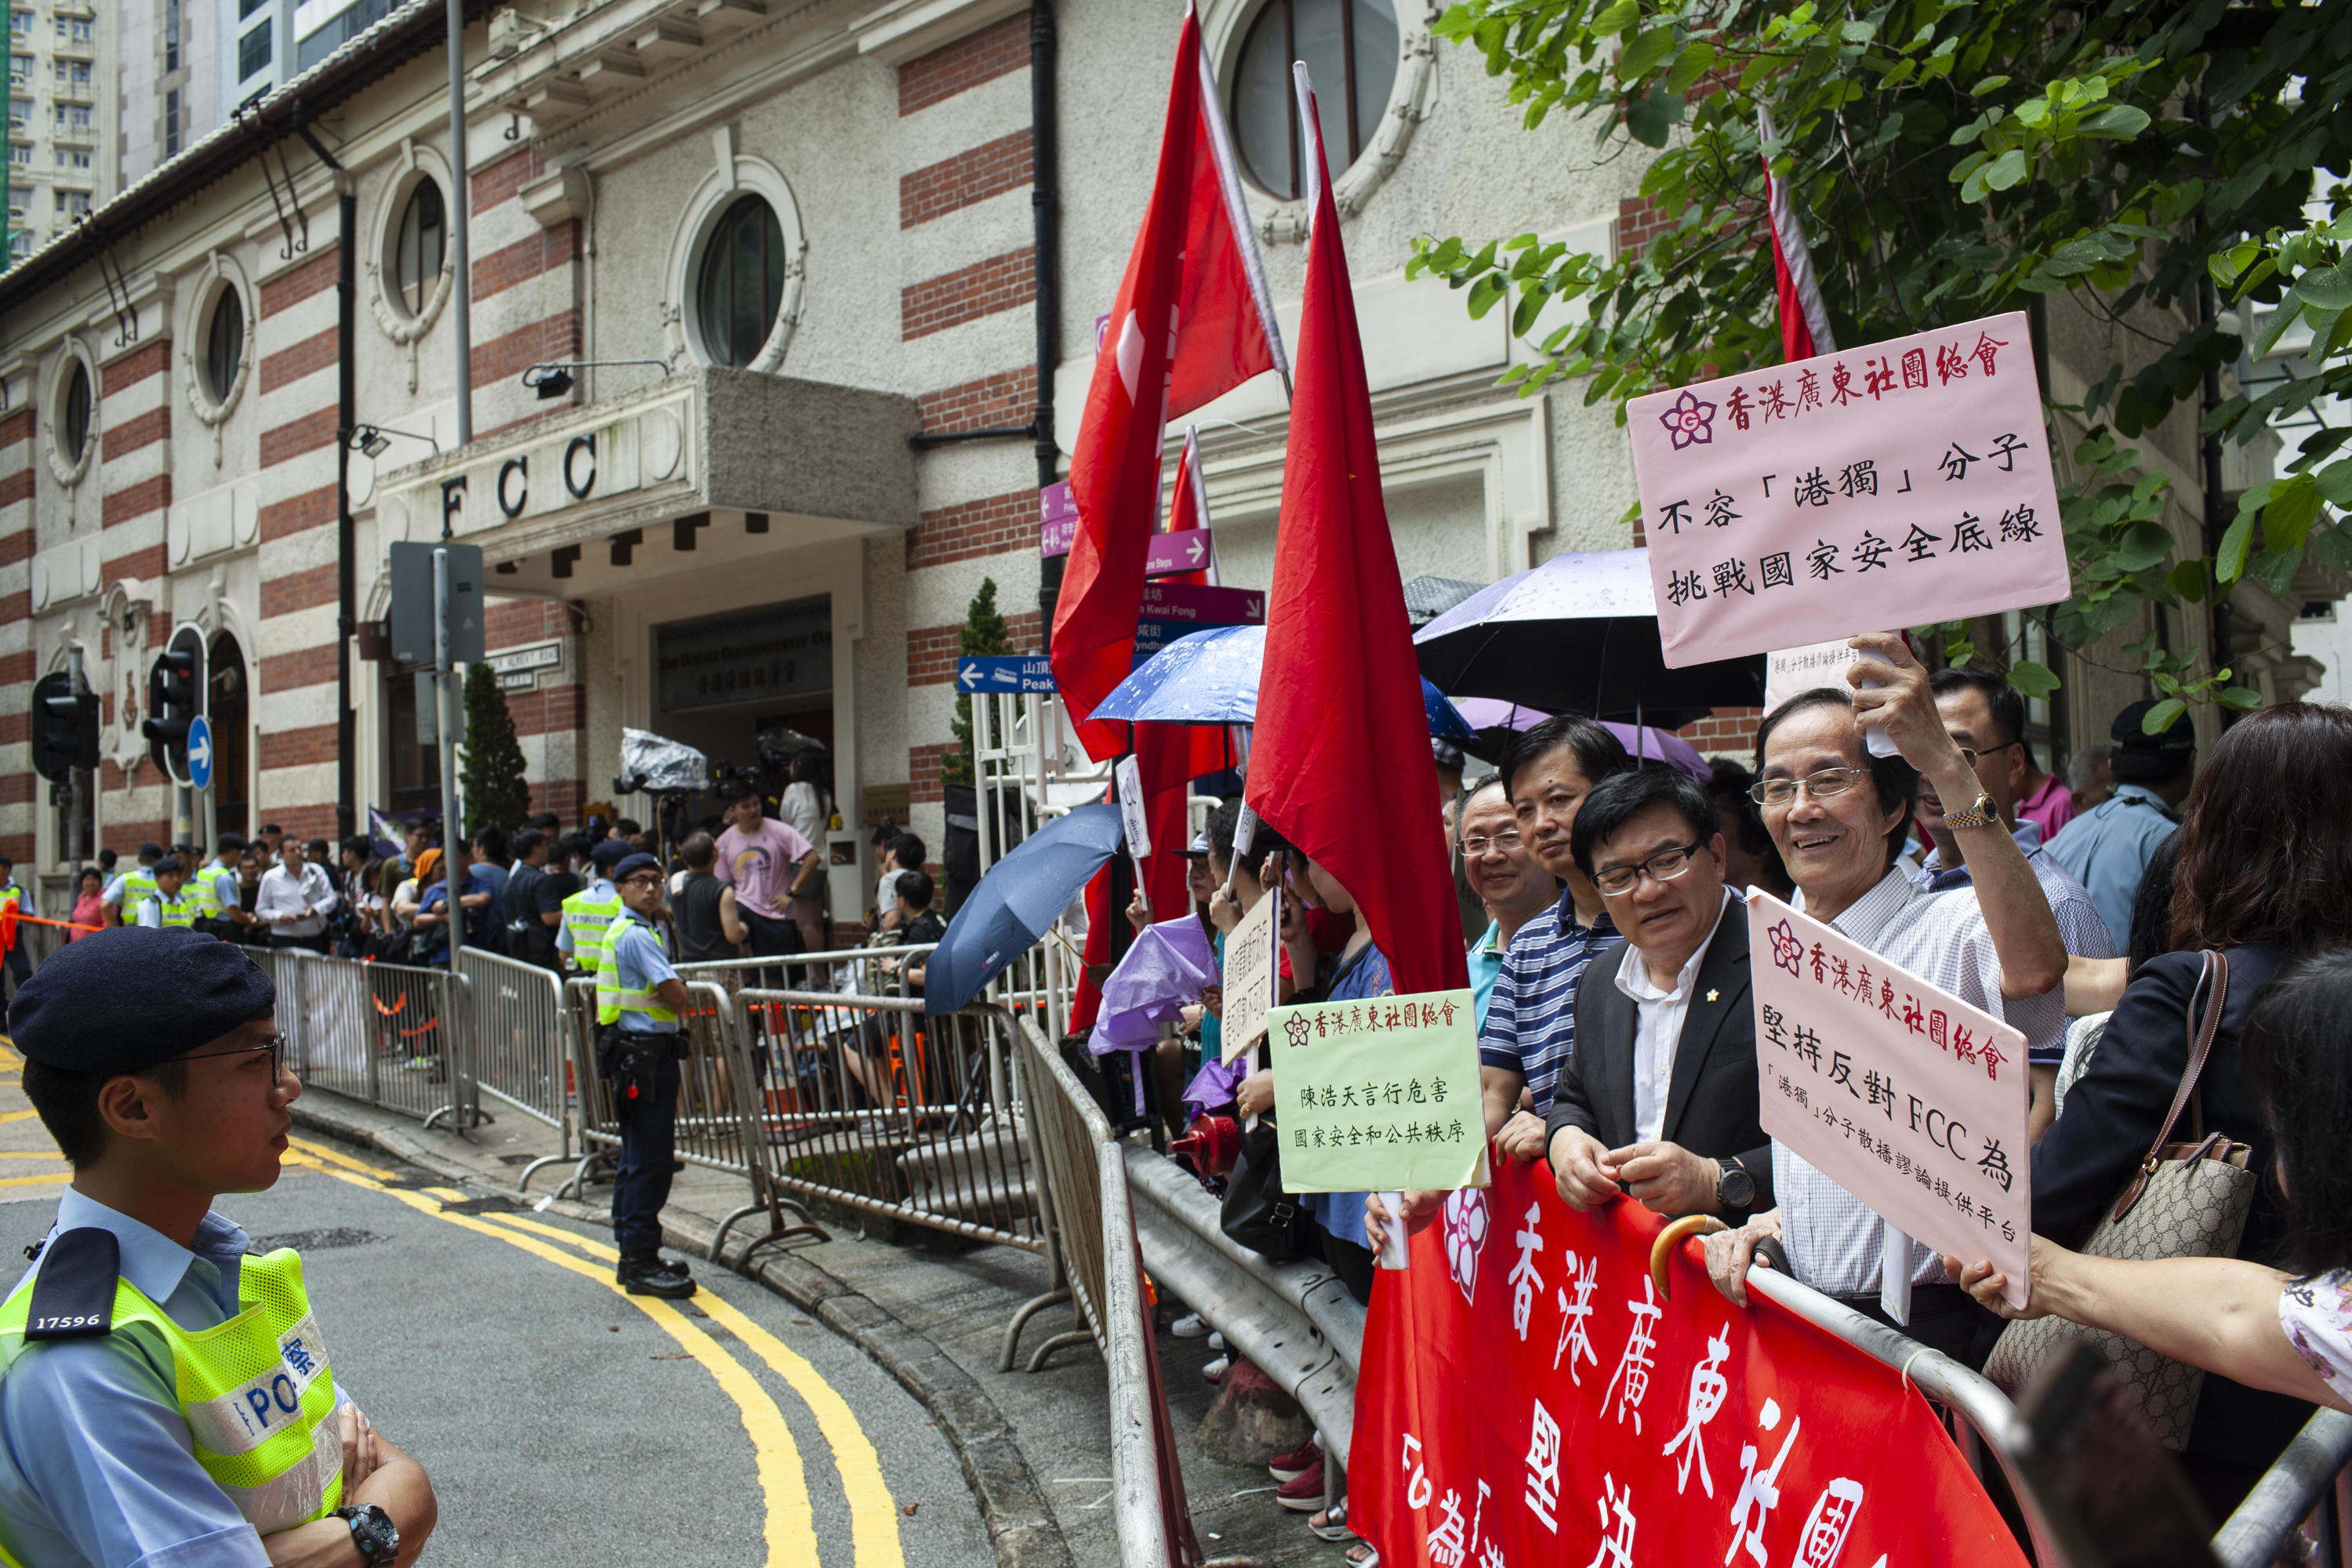 Pro-China demonstrators hold signs outside the Foreign Correspondents Club in Hong Kong on Aug. 13, 2018.